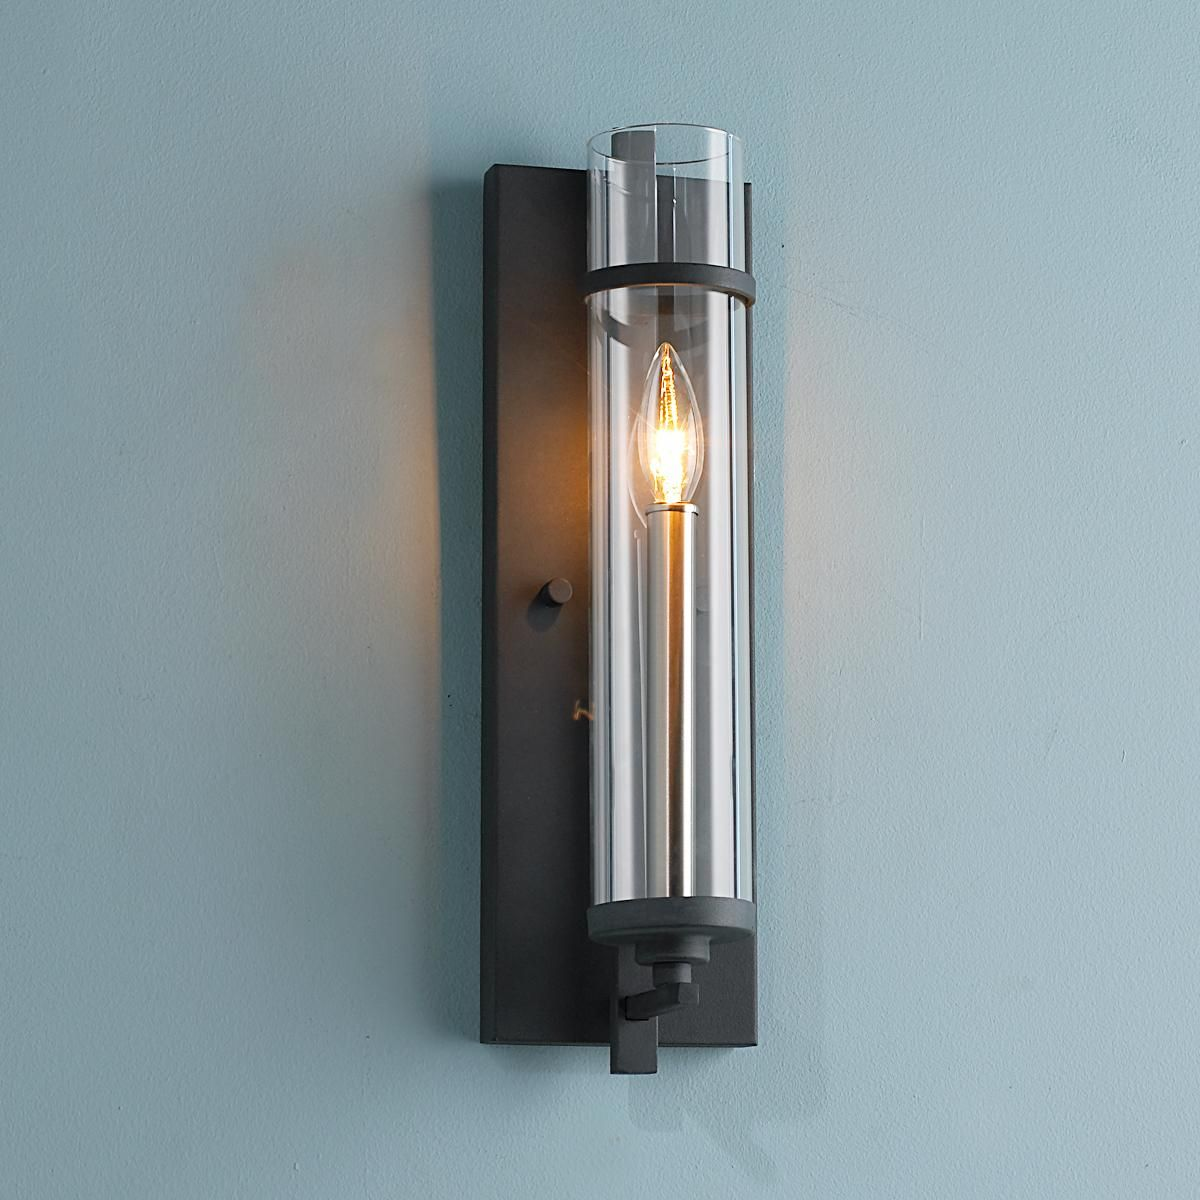 Clearly modern glass tube wall sconce modern glass for Contemporary bathroom wall sconces